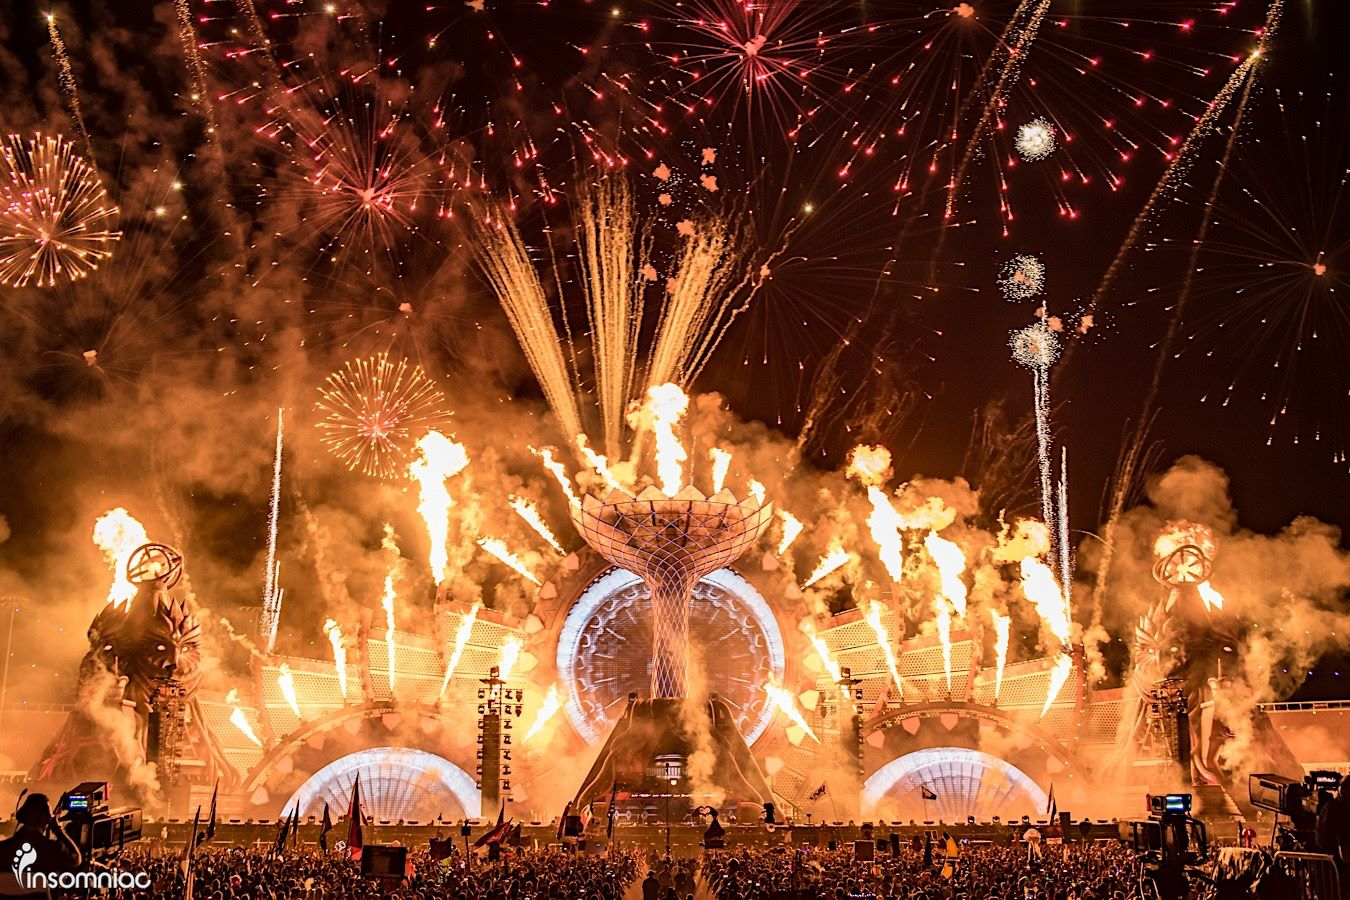 Over 110 Artists To Be Featured On The EDC Las Vegas Live Stream